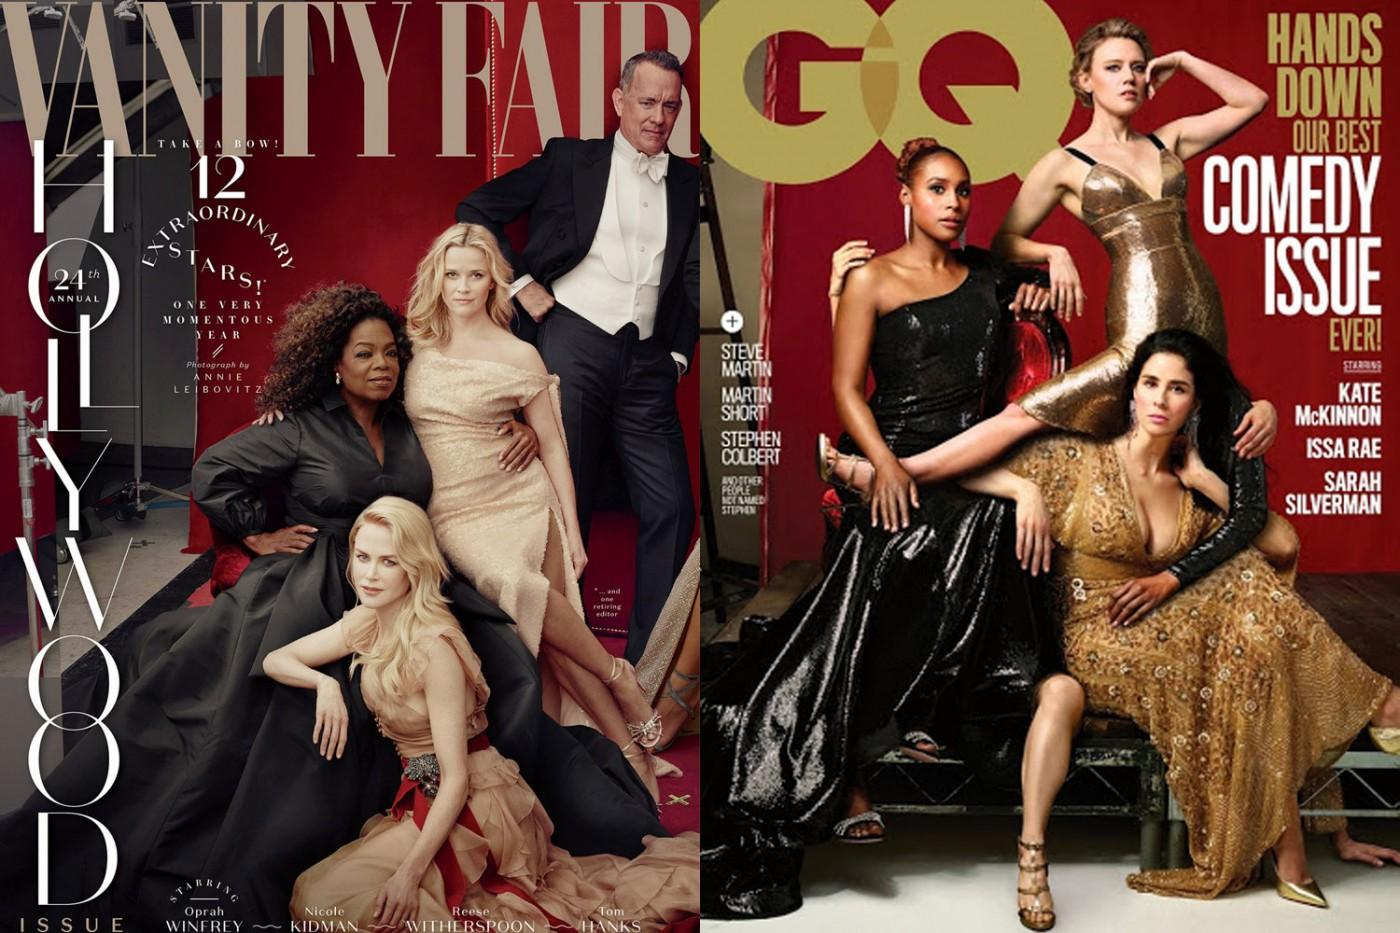 GQ Mocks Vanity Fair's Epic Photoshop Fail With New Comedy Issue Cover